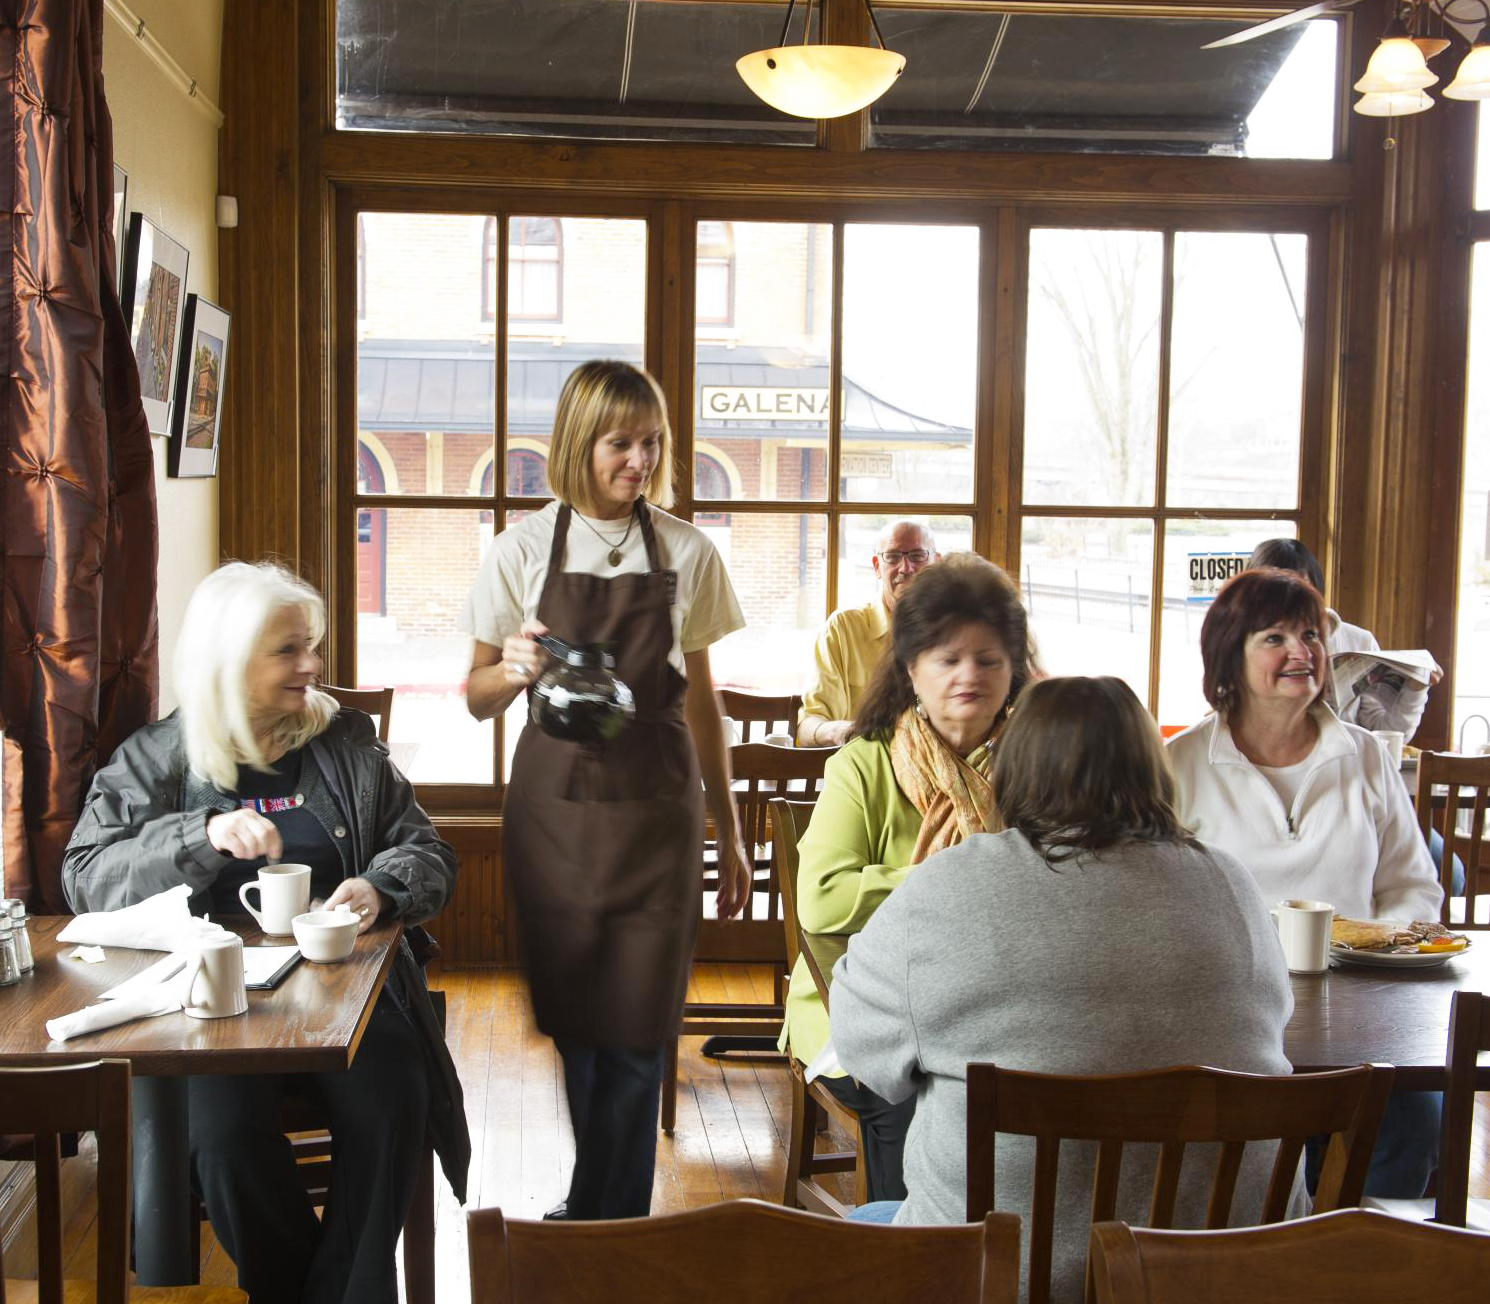 Galena trip guide: Where to eat